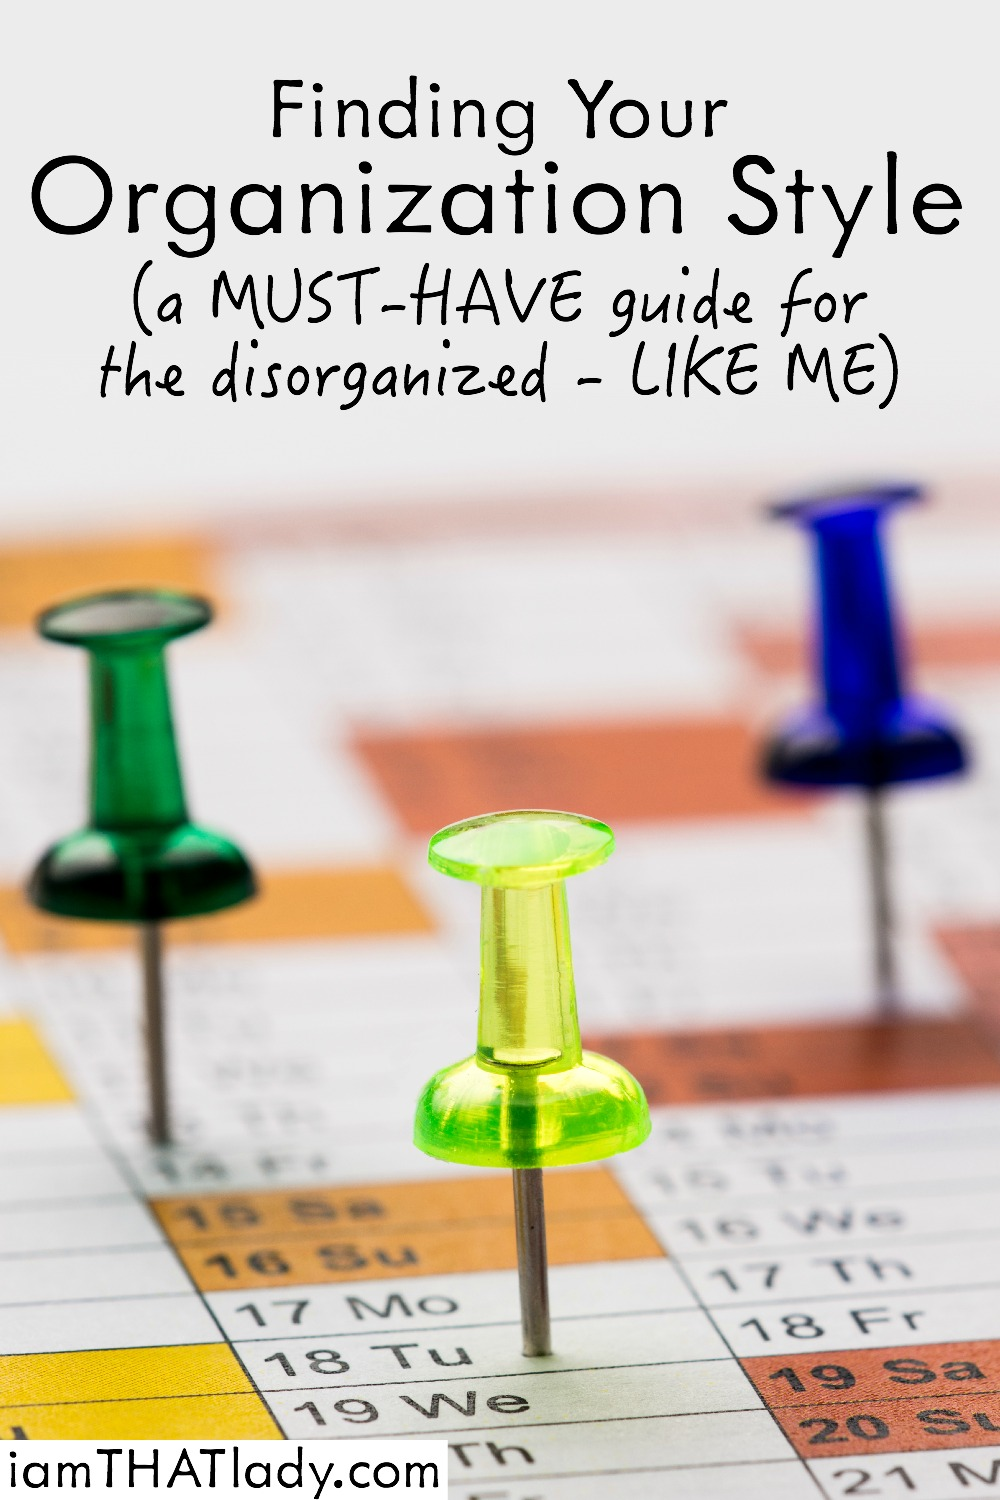 Looking for a way to get Organized? If you're anything like me, you might need some help. And these tips and questions helped me get organized when nothing else worked!